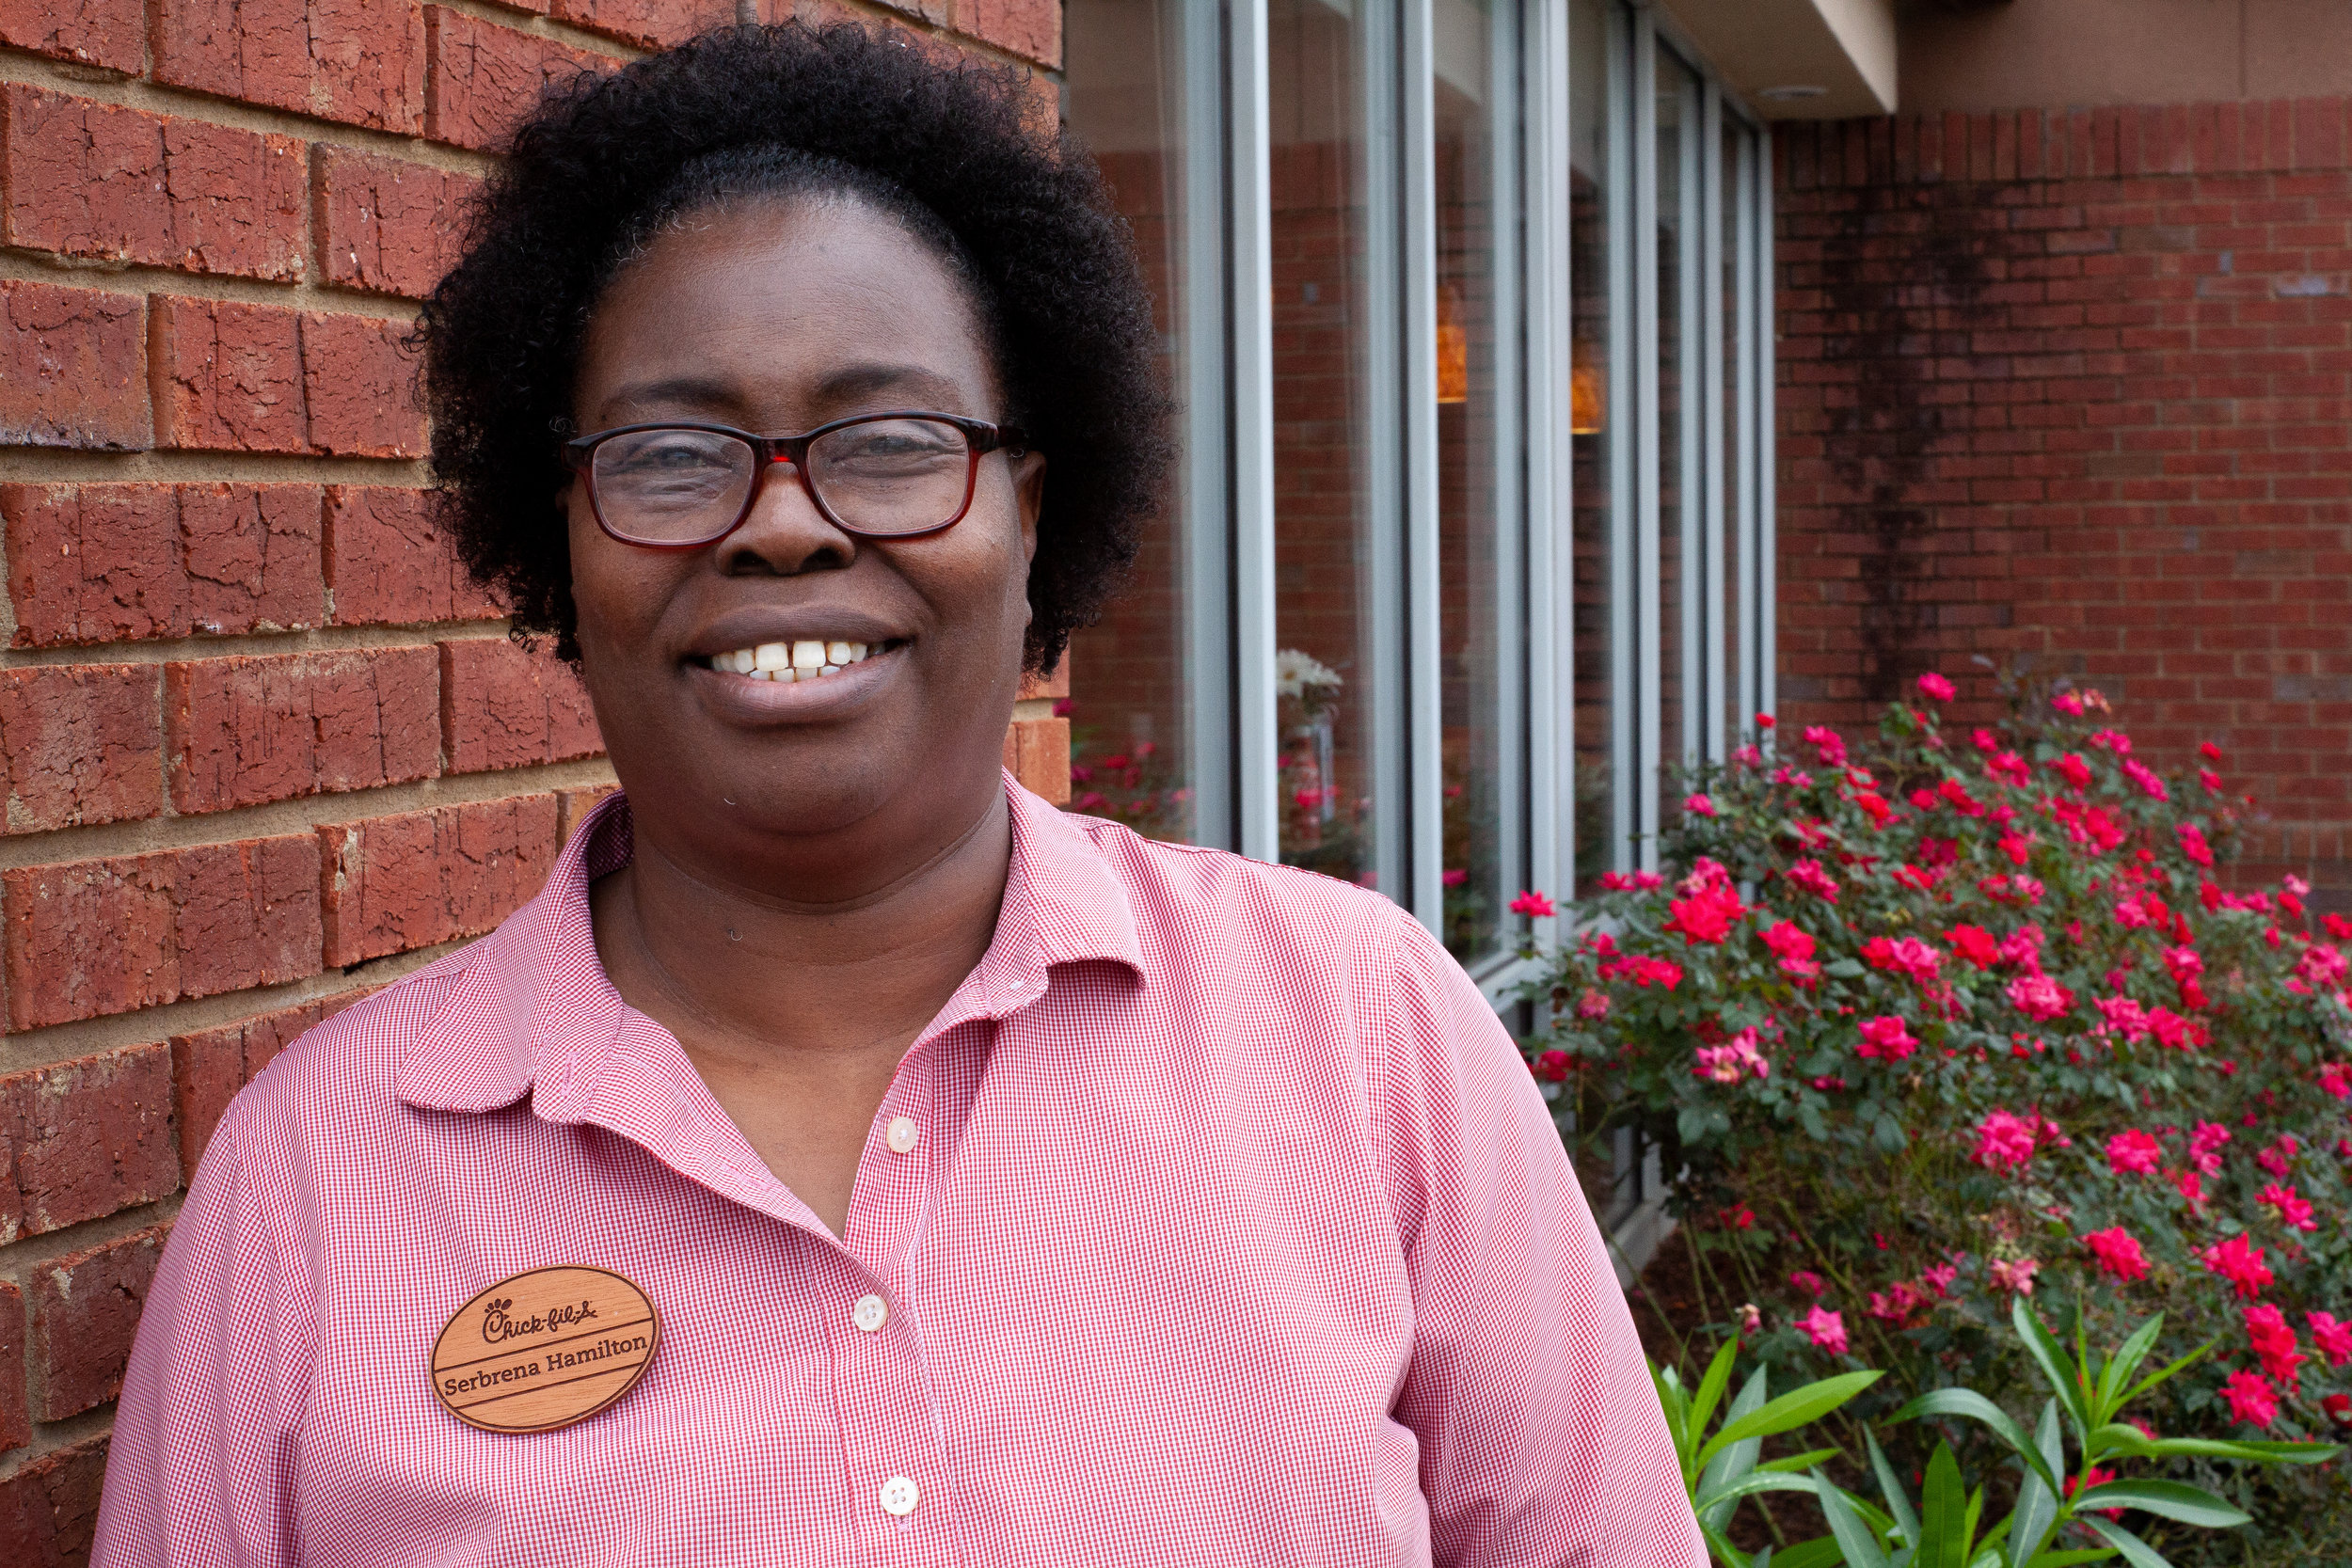 Serbrena Hamilton   Serbrena began working at Chick-fil-A Commerce Ave in 2003. She enjoys working with new people and learning different things about our guests. She is passionate about catering, making sure that when a guest places an order, they are set up to make their event a success.